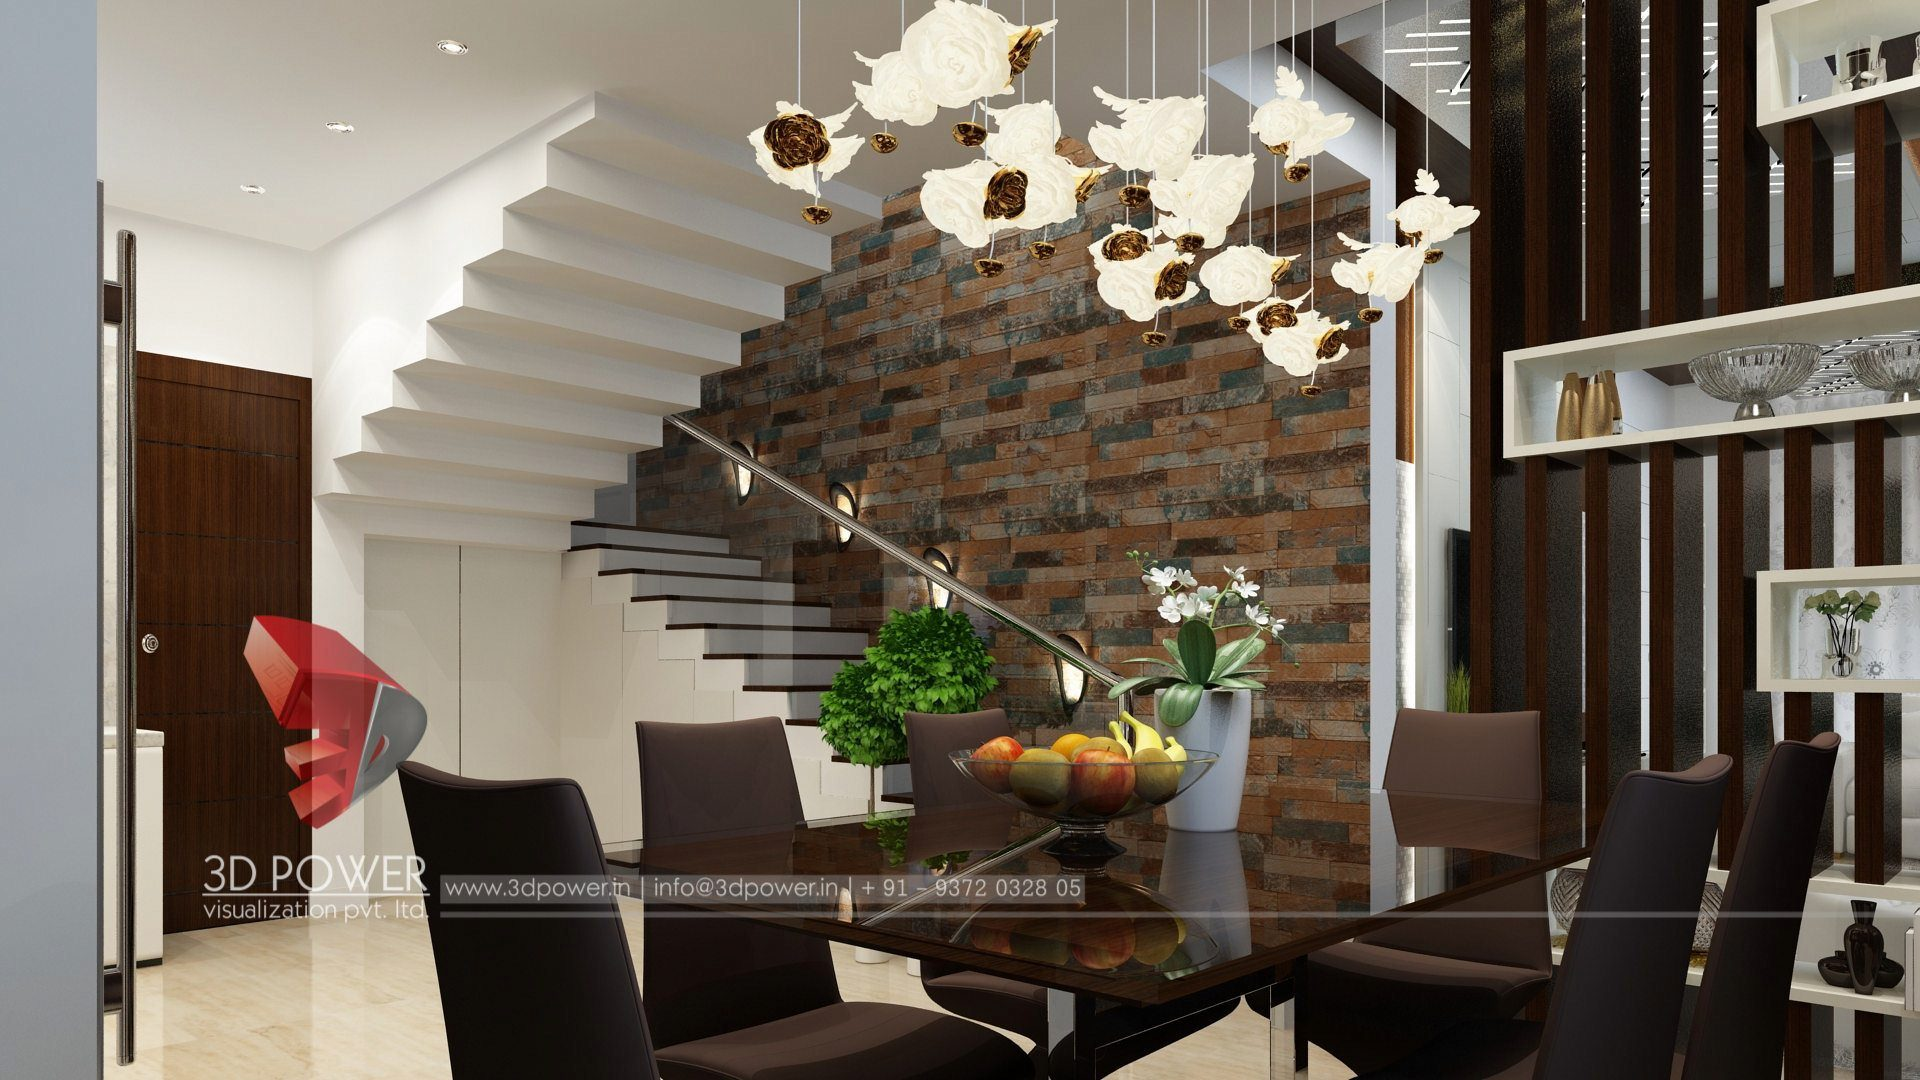 ... 3d-designing-services-kitchen-interior-design ...